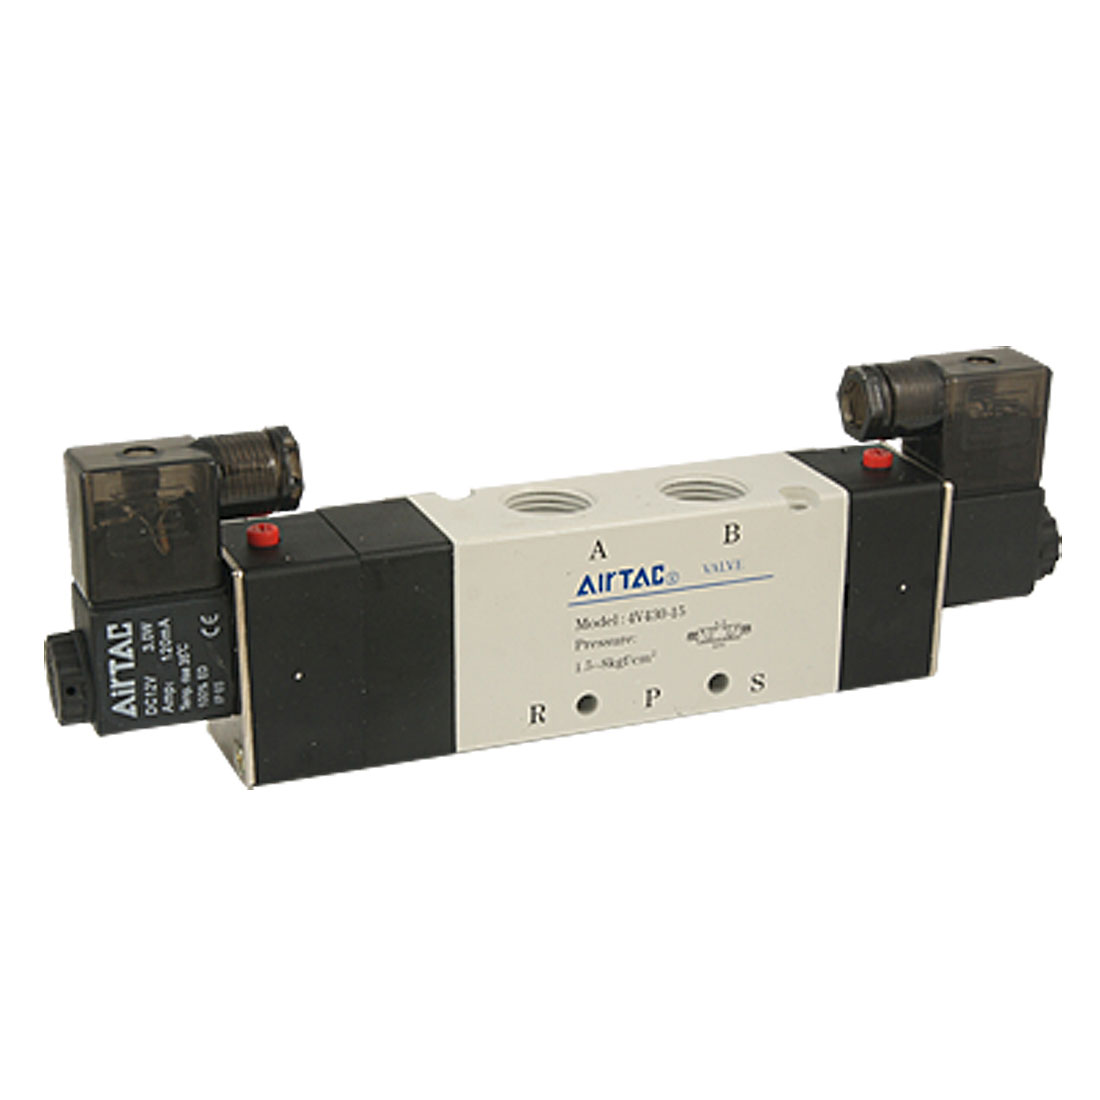 4V430-15 DC12V 3 Position 5 Way Pneumatic Solenoid Valve